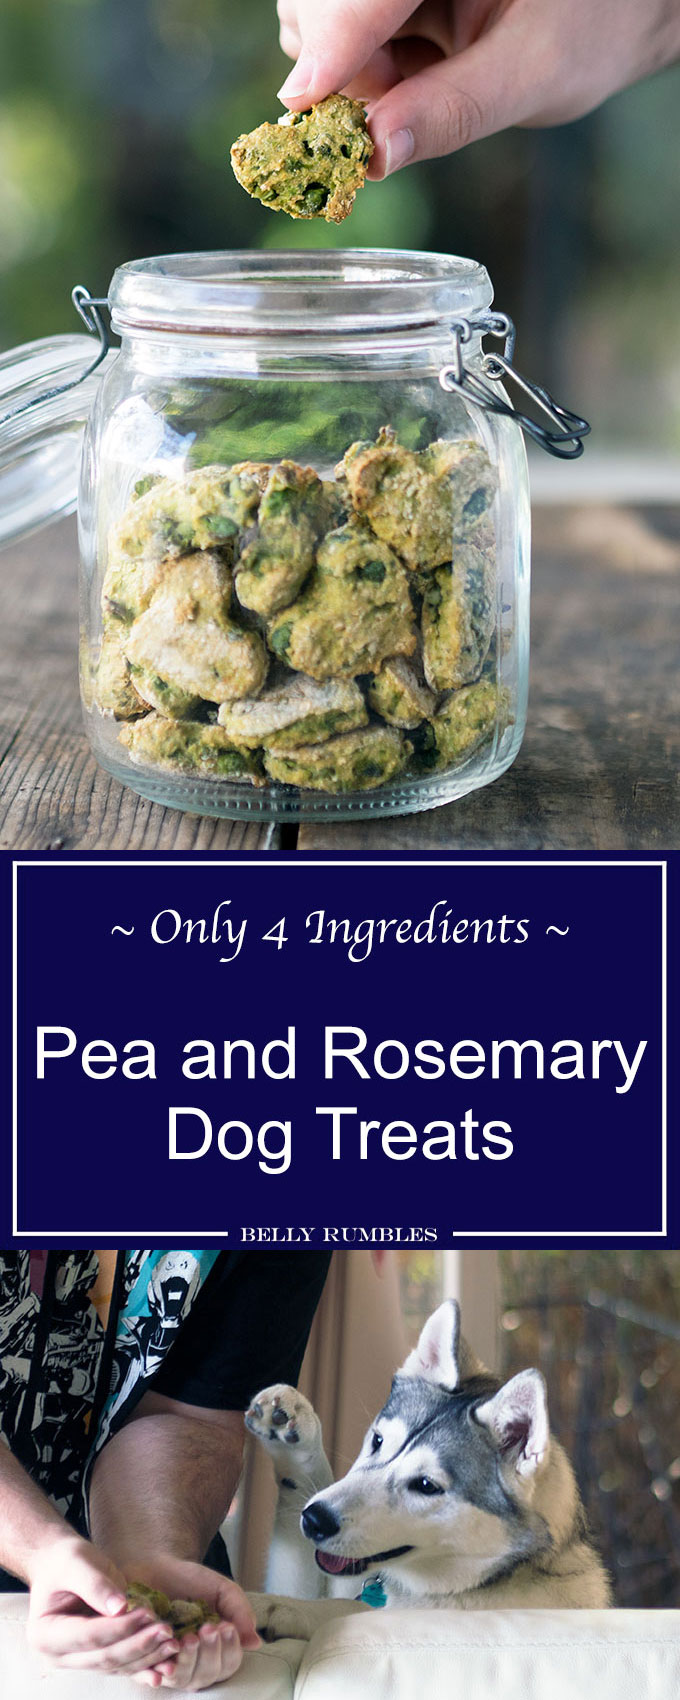 These pea and rosemary dog treats with have your favourite puppy doing back flips. Only 4 ingredients and easy peasy to make.